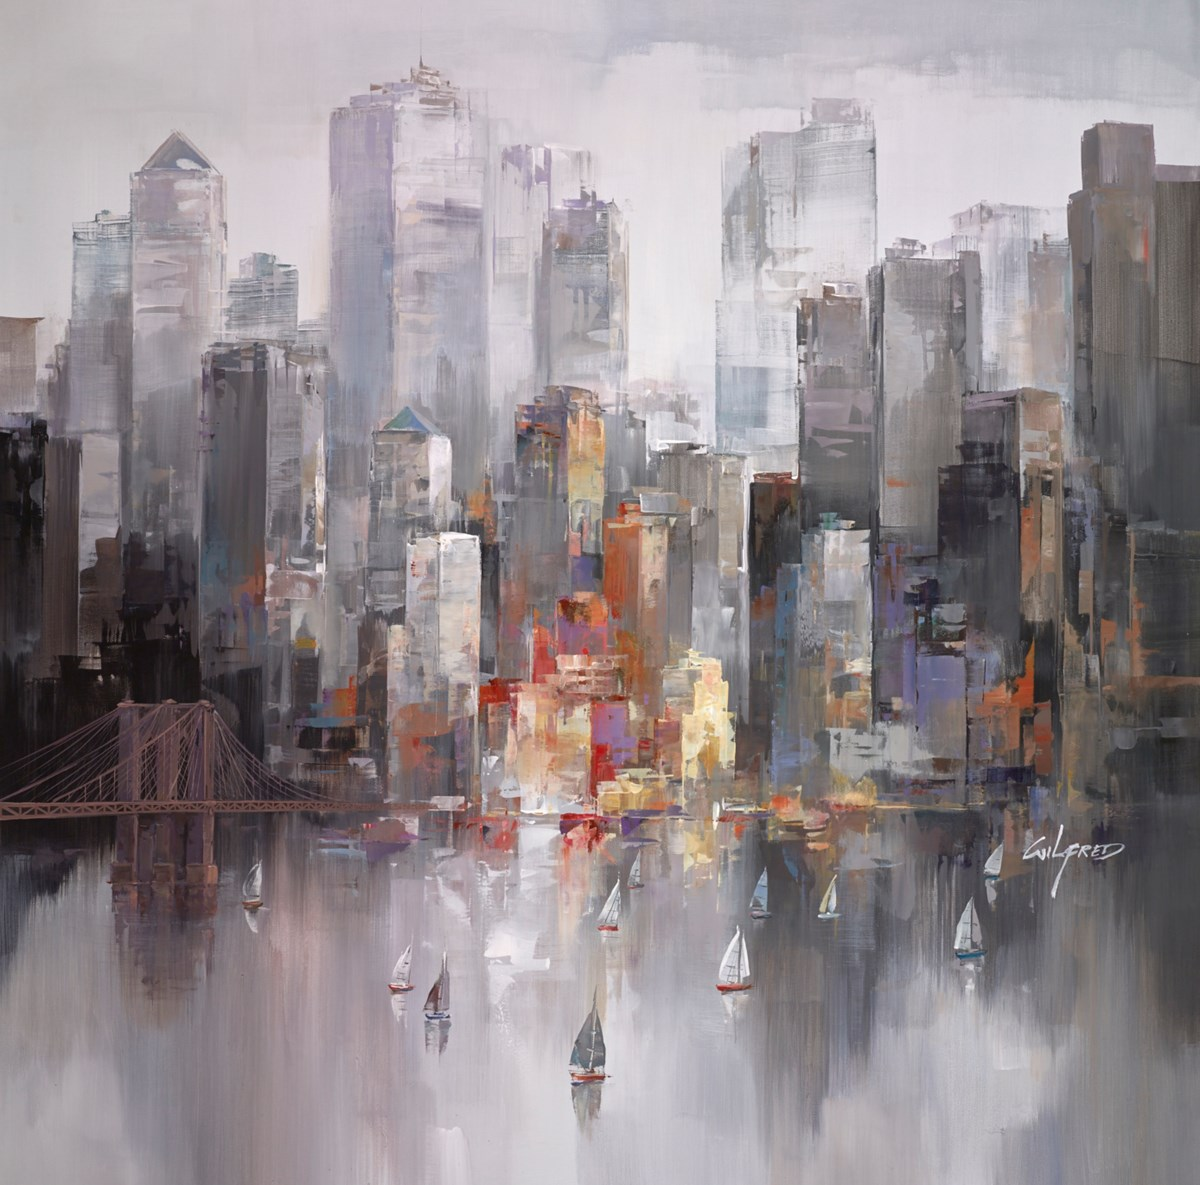 To the City VI by wilfred -  sized 38x38 inches. Available from Whitewall Galleries